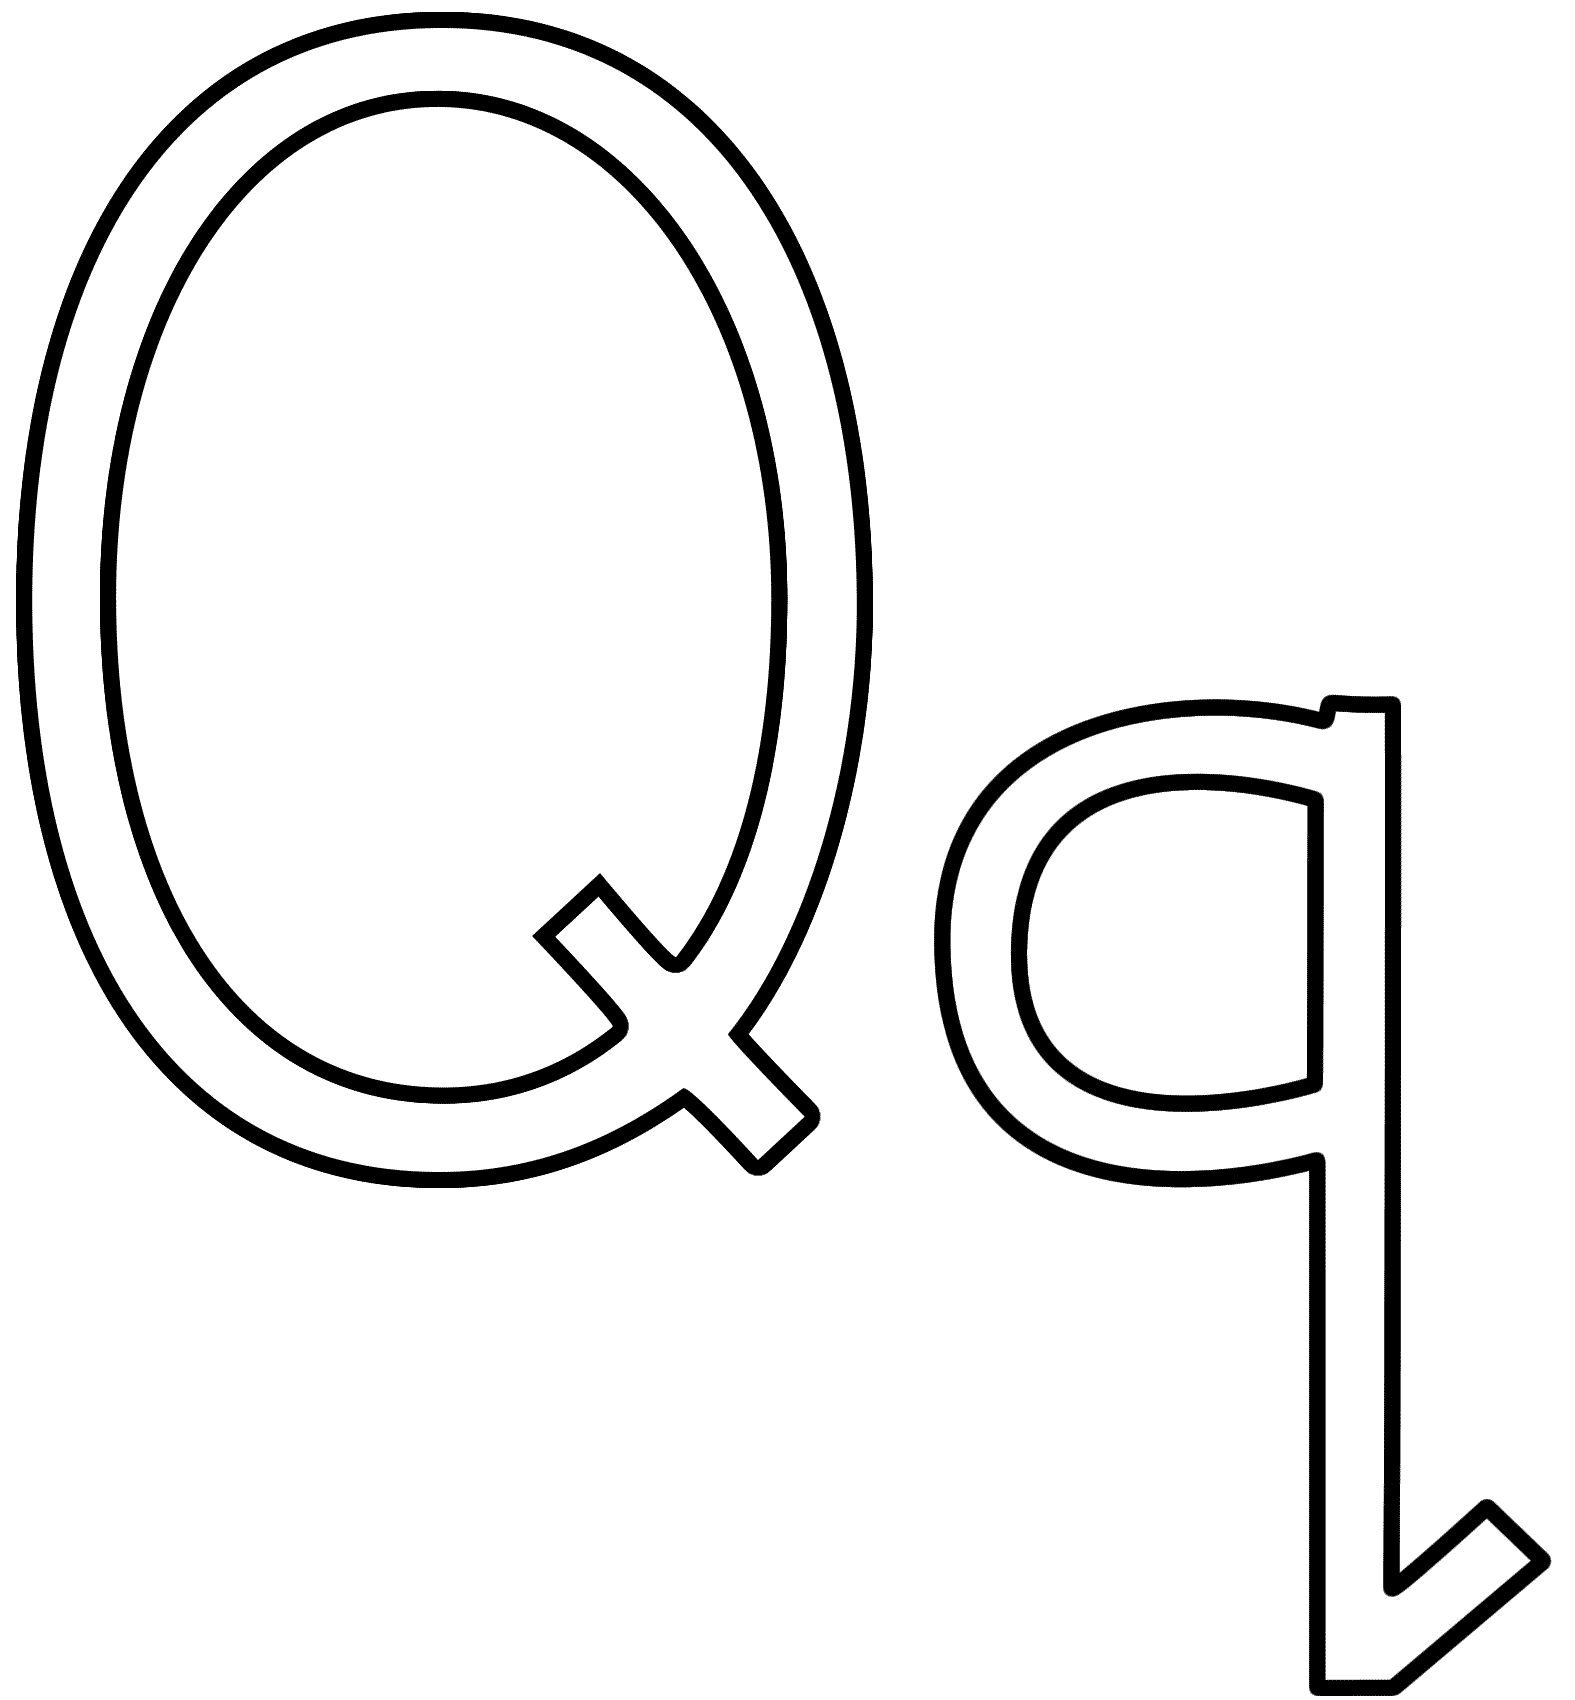 free printable letter q coloring pages printable letter q template alphabet letter q templates coloring q free letter pages printable